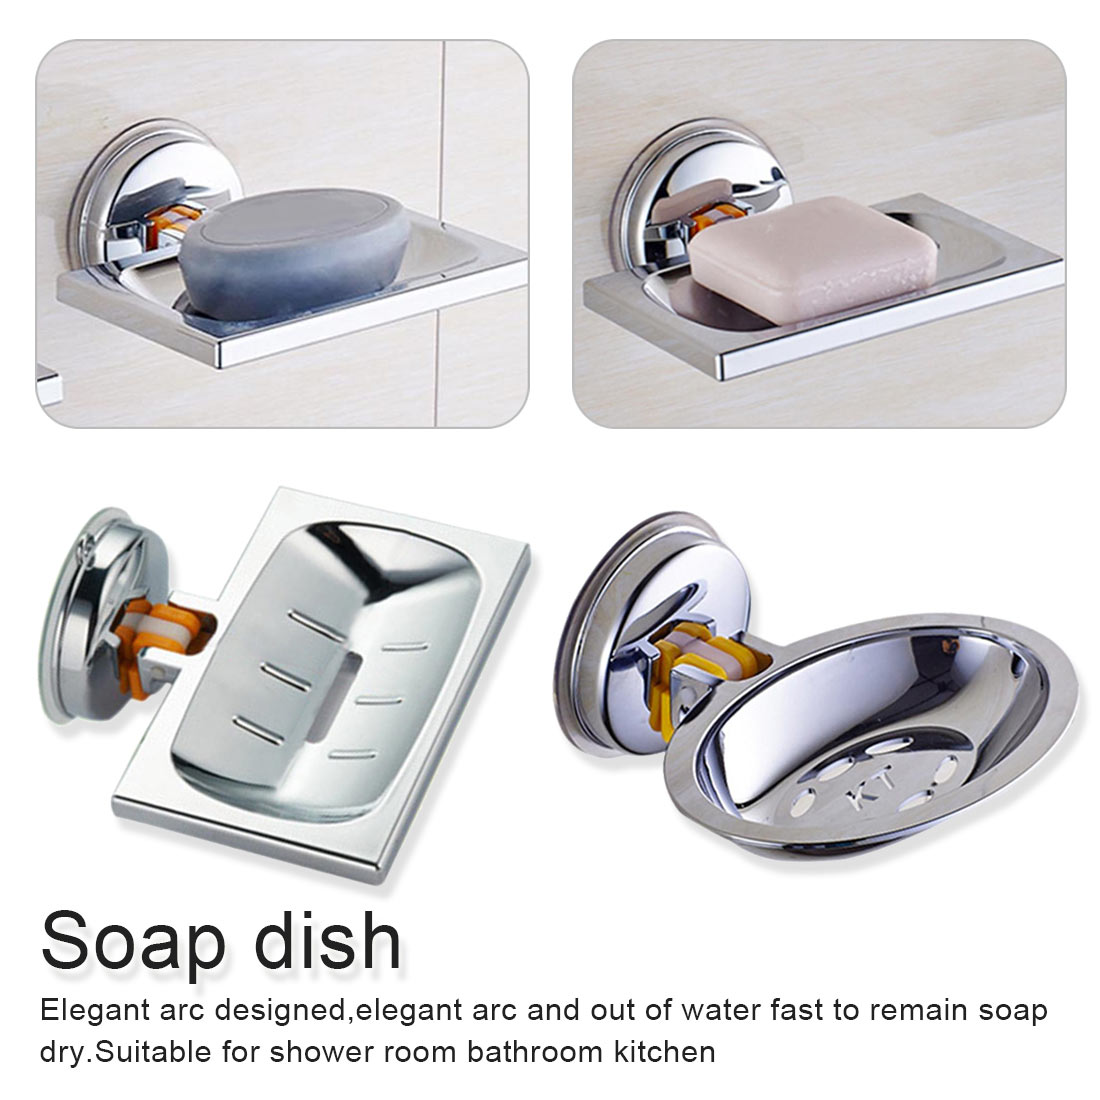 Suction Cup Soap Holder Bathroom Toilet Soap Box Creative Drain Soap Box Storage Rack Soap Tray Shower Accessory